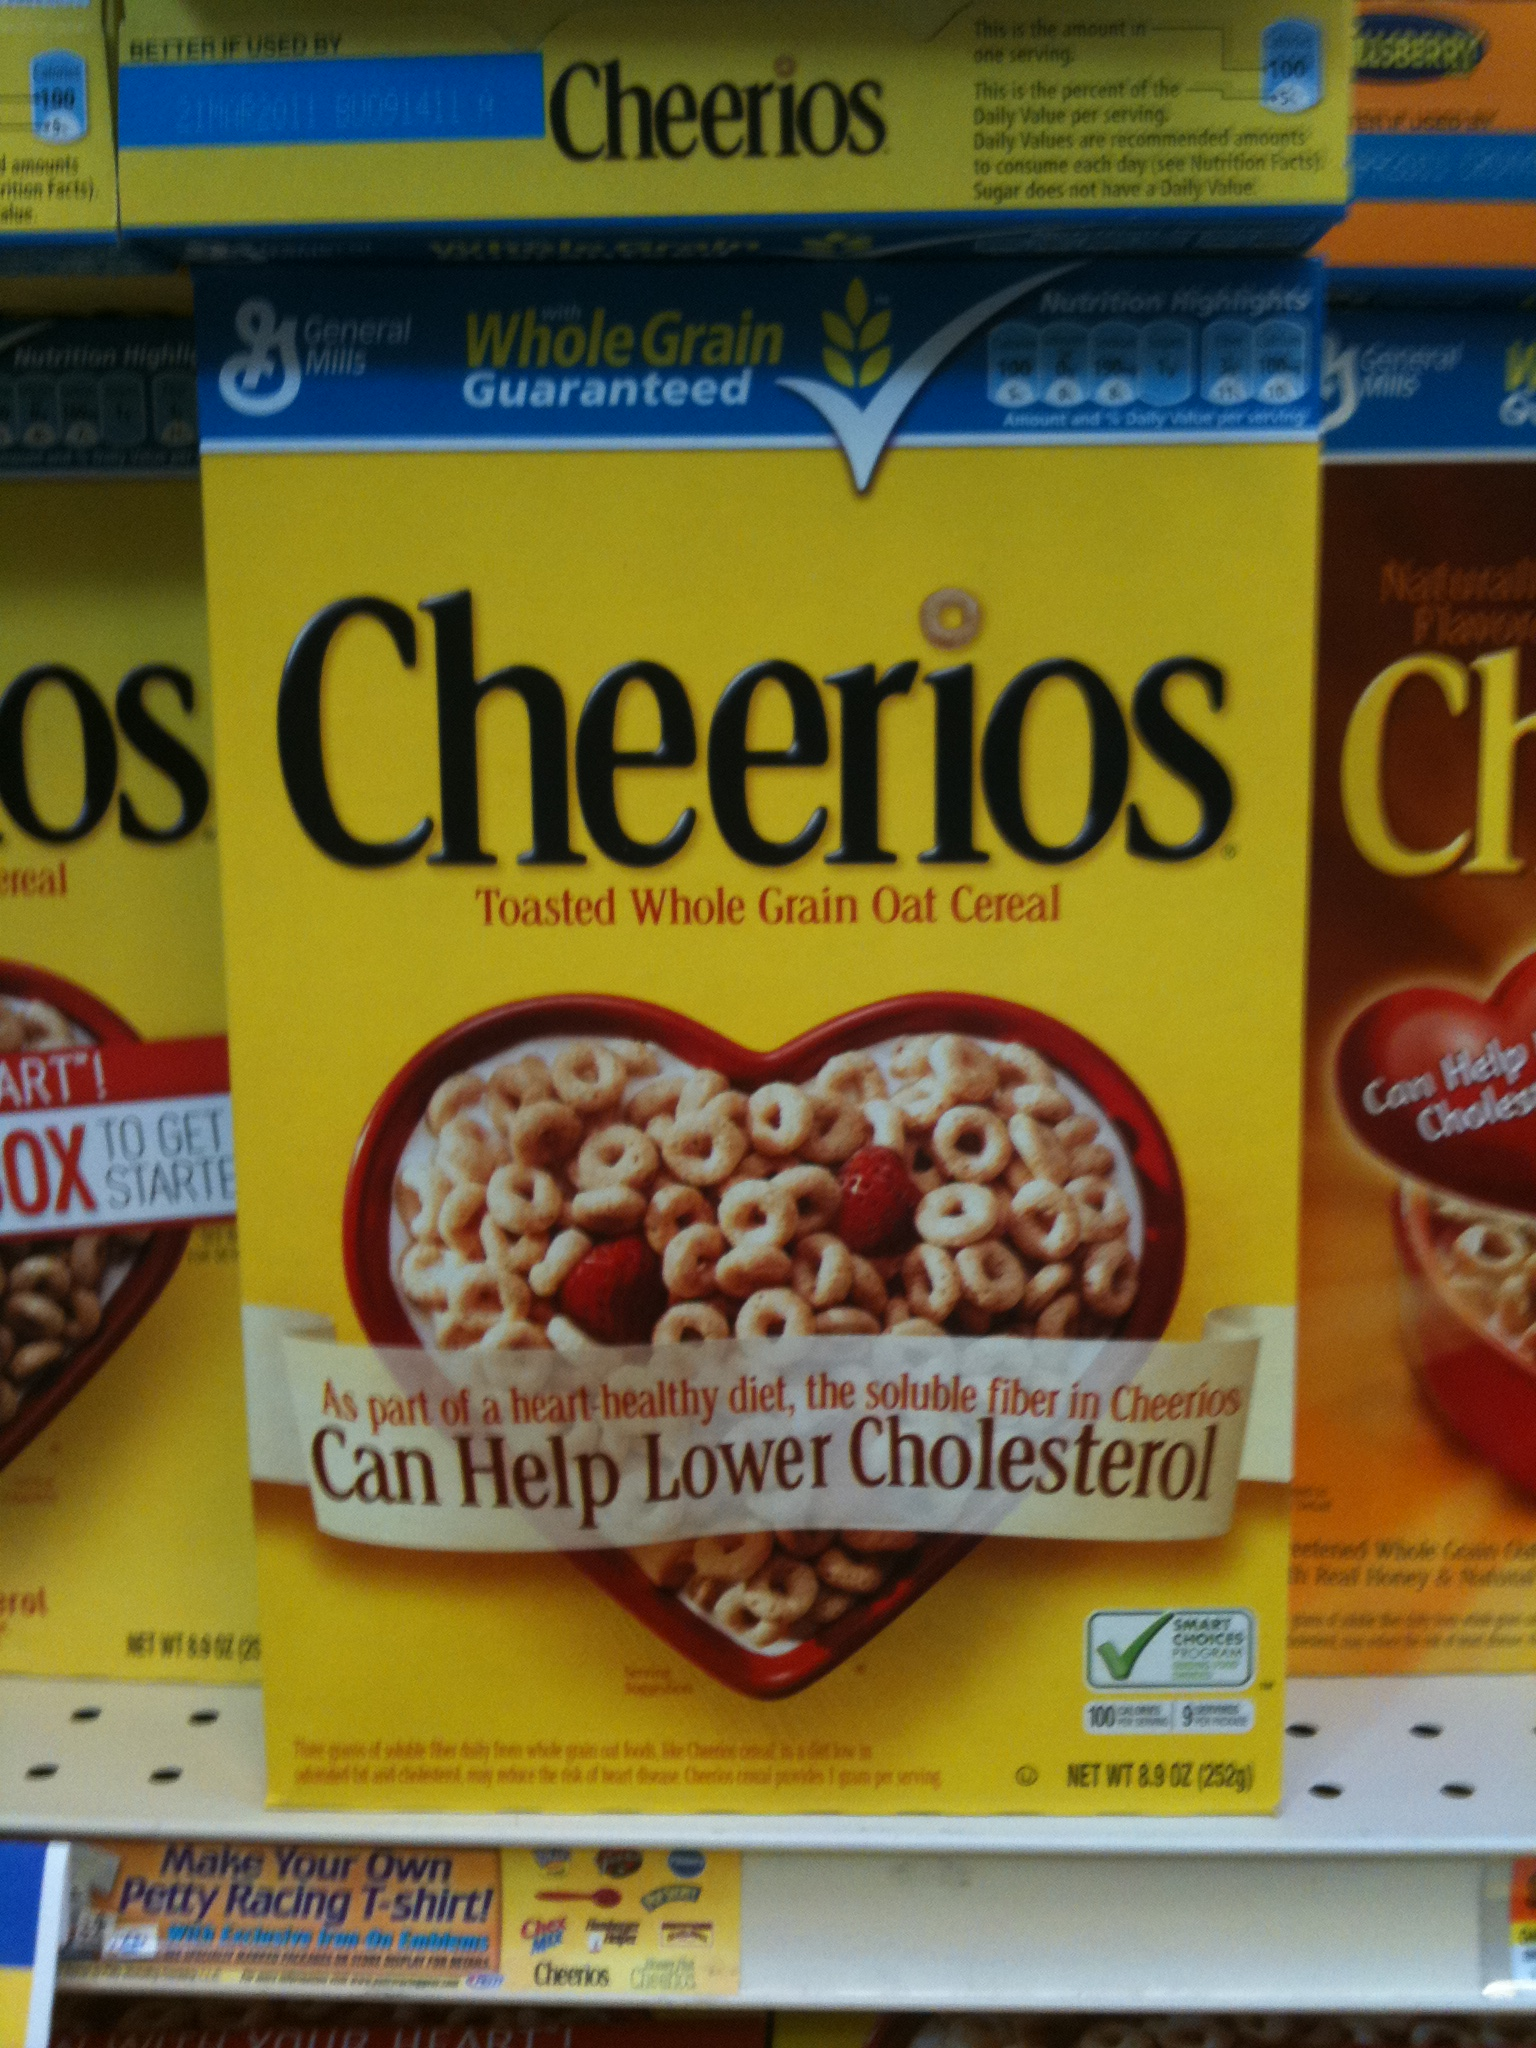 How Do I Get My Cholesterol Down Naturally